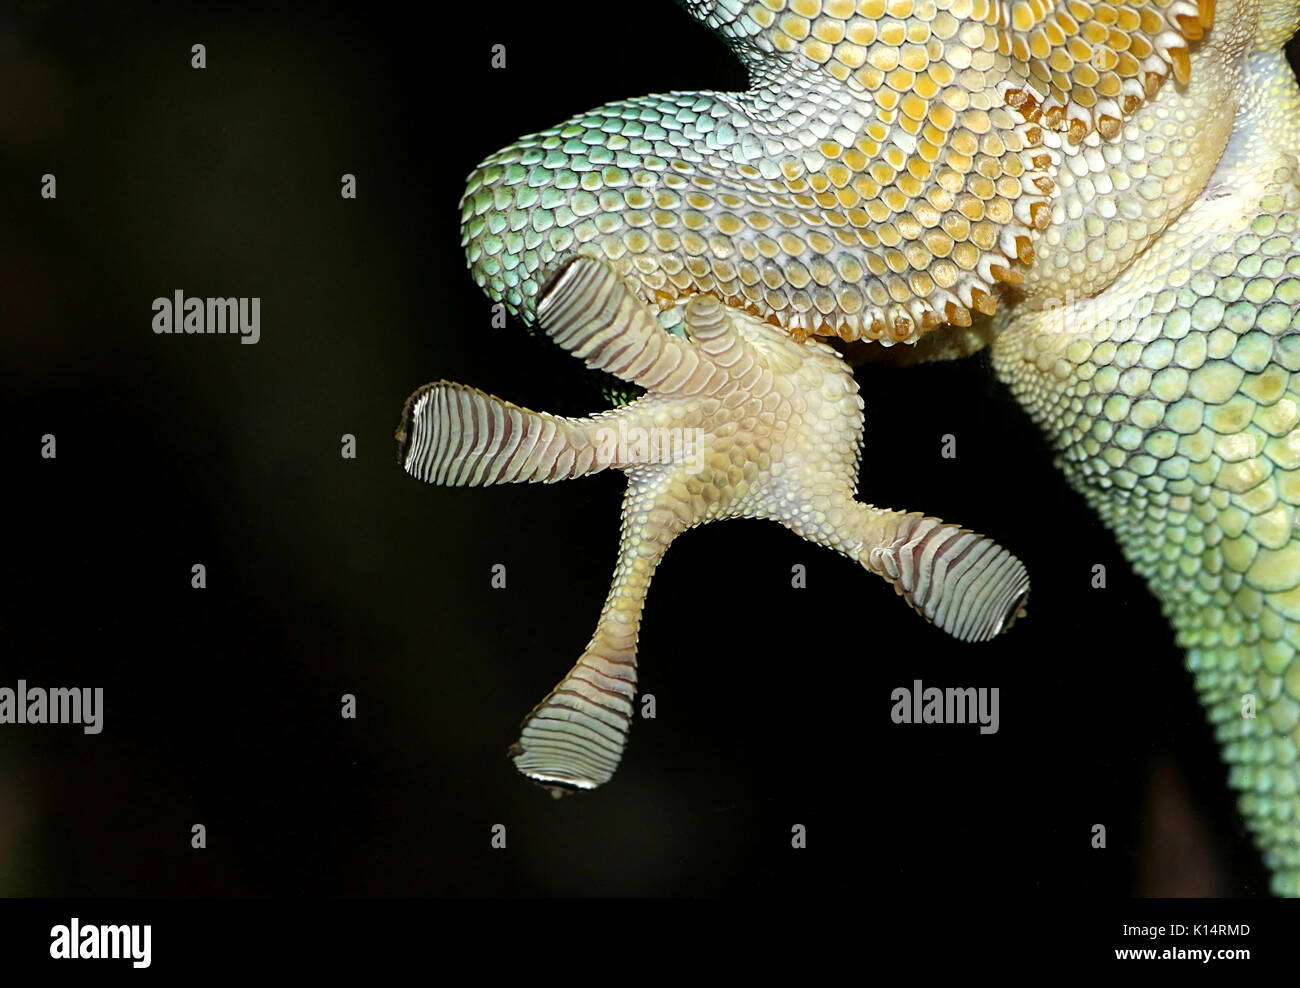 Close-up of a Green Madagascar Day Gecko (Phelsuma madagascariensis) hind foot clinging to a glass window pane with Stock Photo